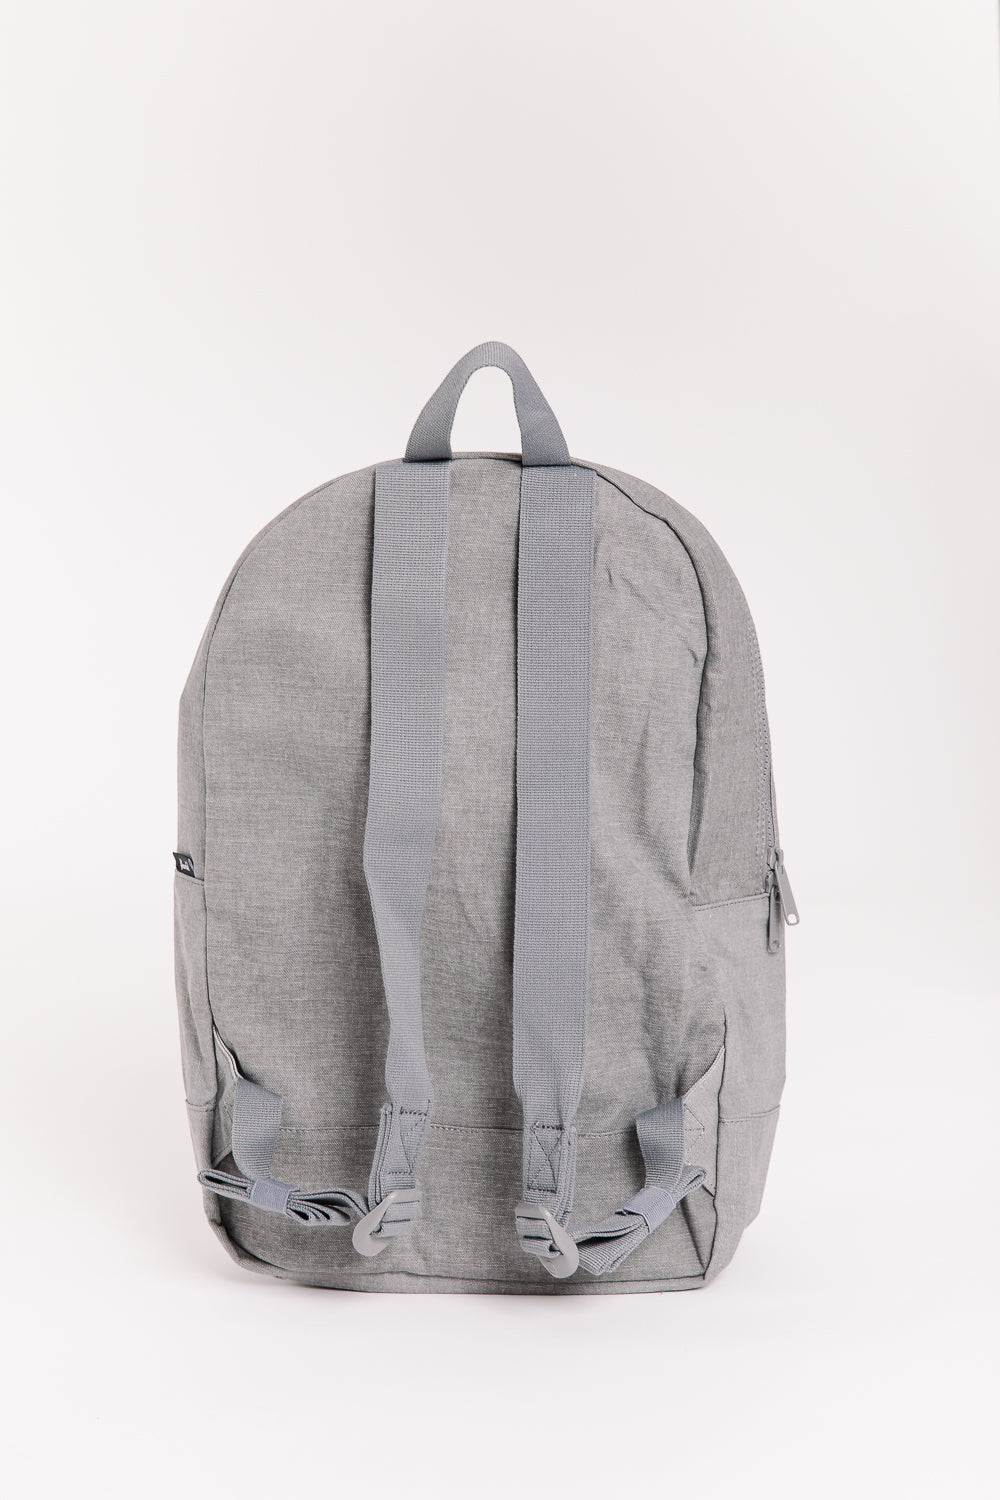 Herschel: Daypack in Canvas Smoked Pearl